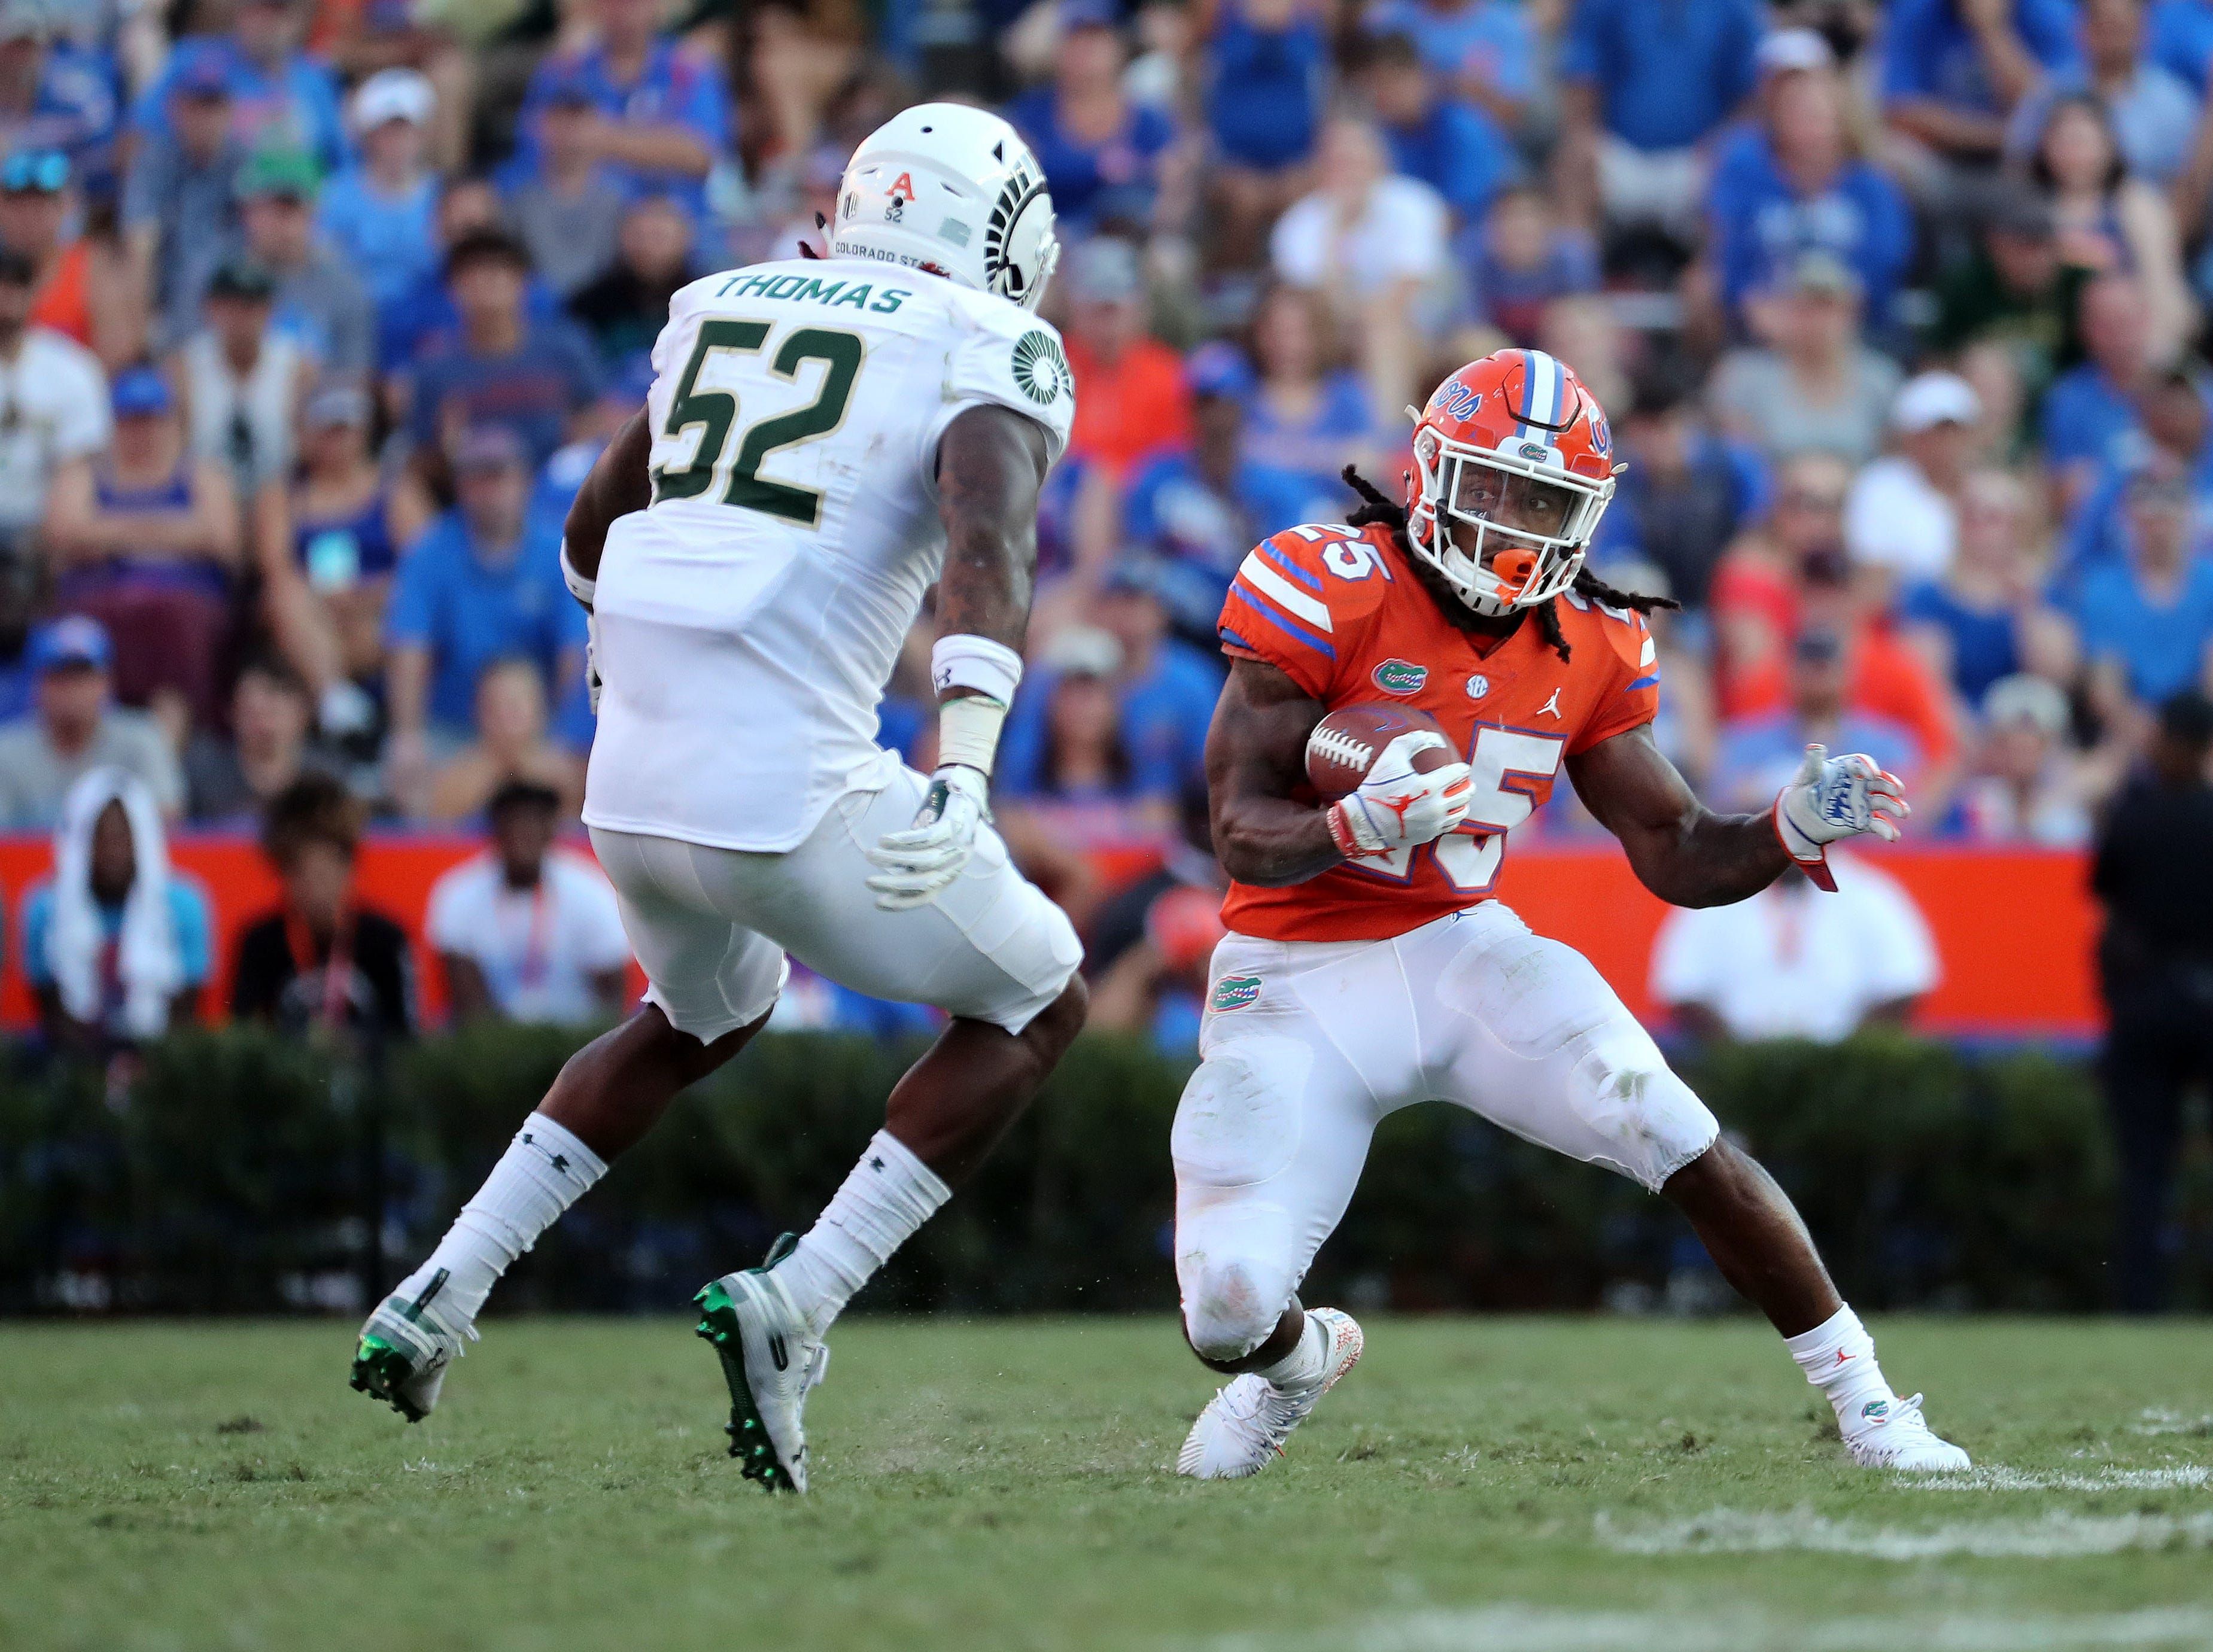 Sep 15, 2018; Gainesville, FL, USA; Florida Gators running back Jordan Scarlett (25) runs with the ball against Colorado State Rams linebacker Tre Thomas (52) during the second half at Ben Hill Griffin Stadium. Mandatory Credit: Kim Klement-USA TODAY Sports